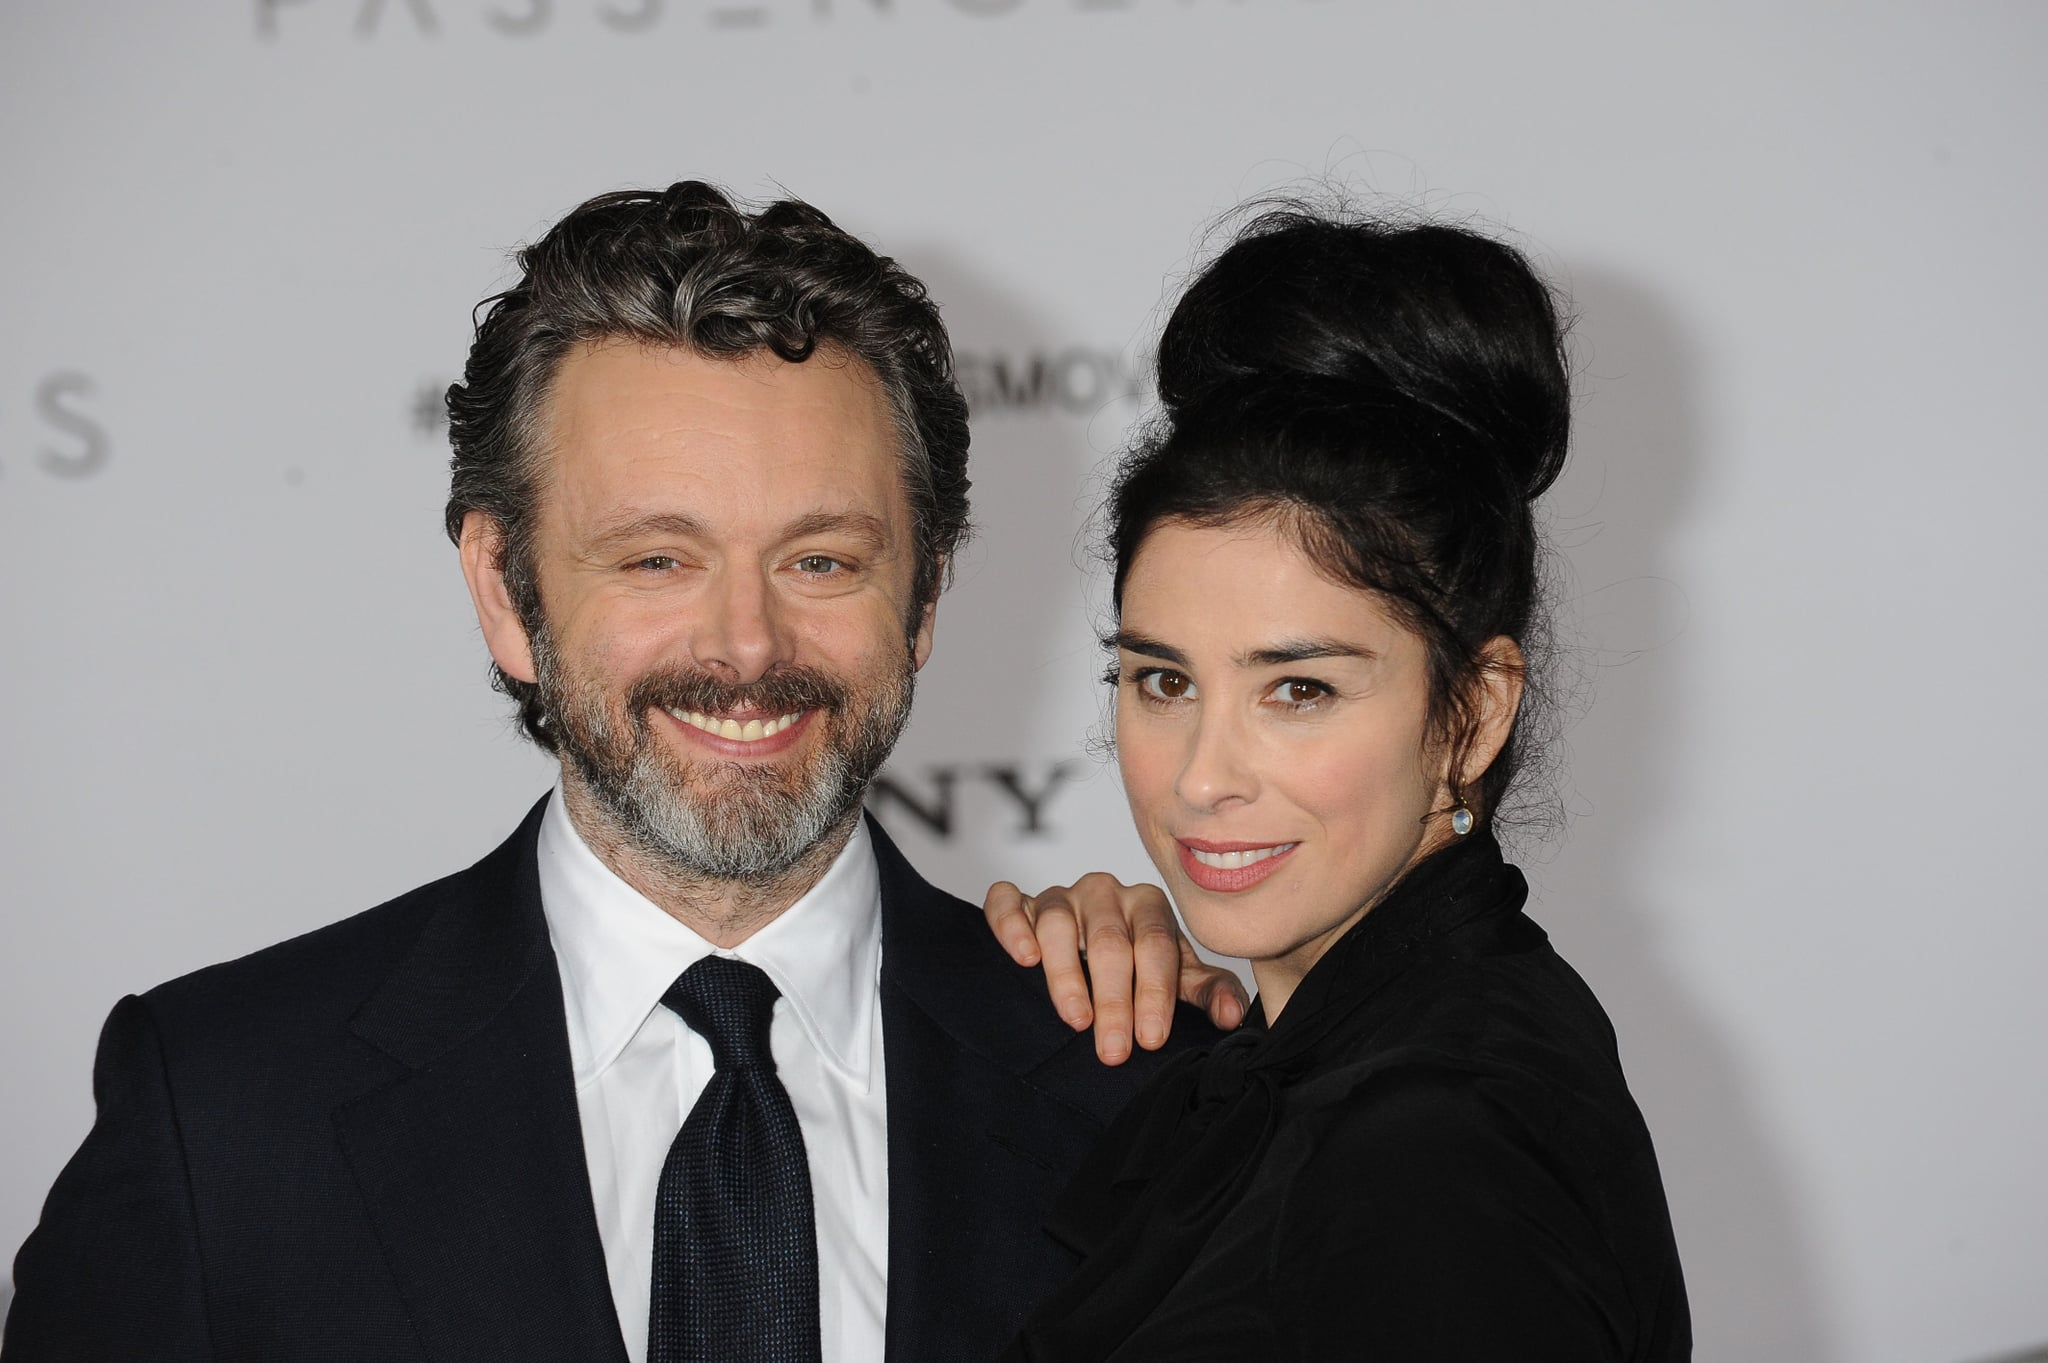 Sarah Silverman Quietly And Consciously Uncoupled Over The Holidays